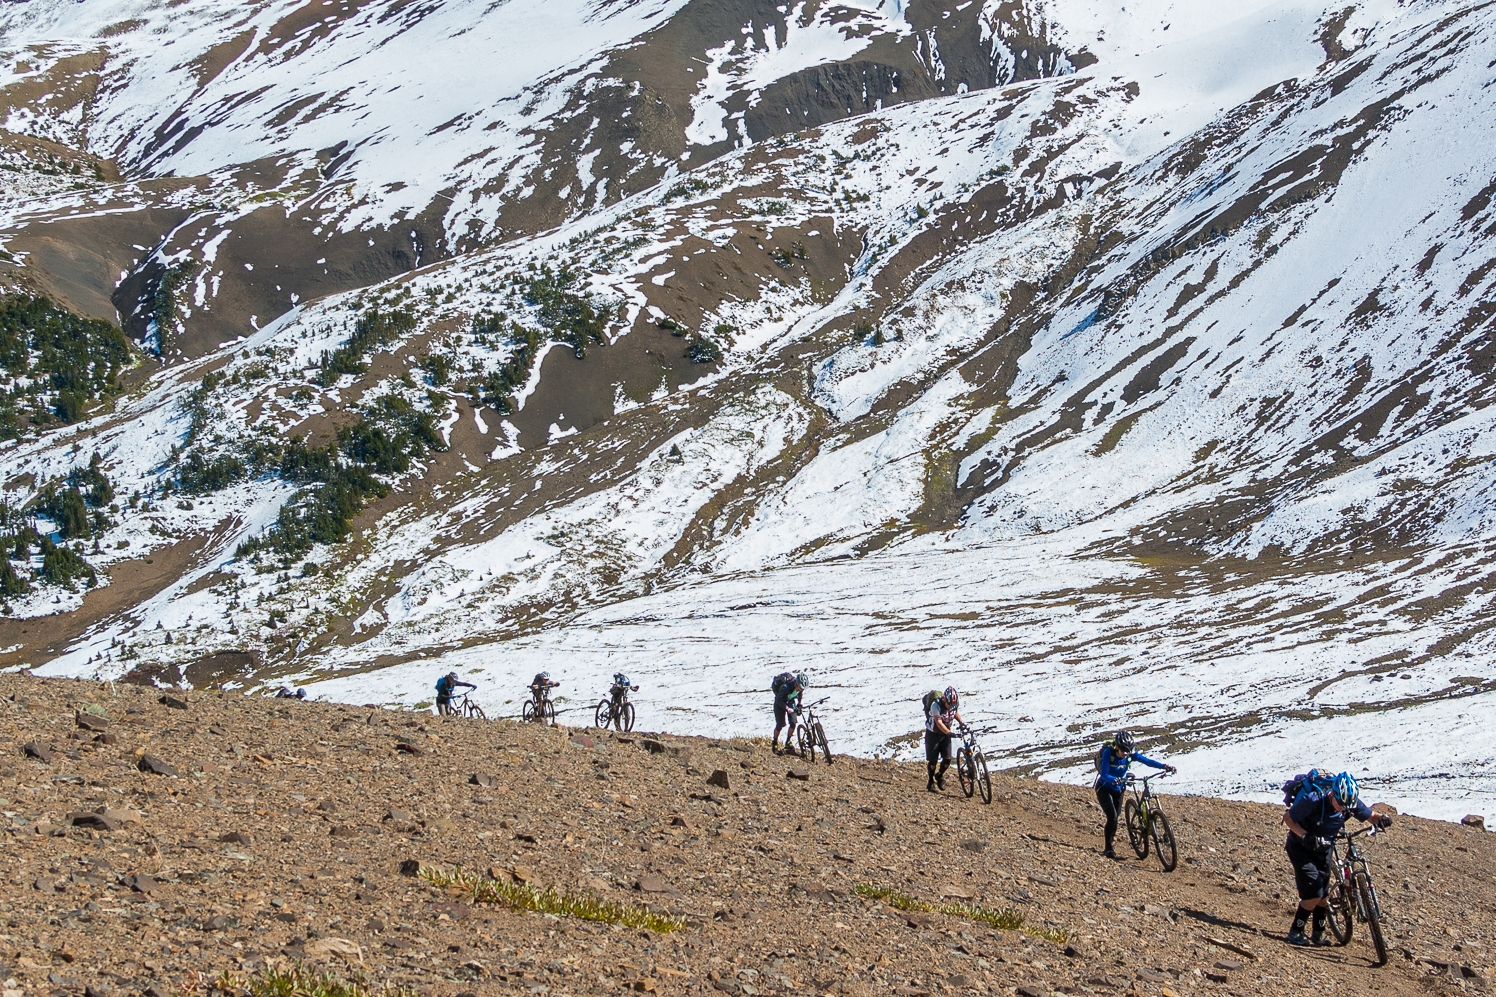 Mountain Biking - There isn't anything much more fun than exploring on two wheels! From epic multi-day adventures in the mountains (aka mountainbikeaneering;) to stage racing and weekend warrior adventures, you will find some single track stoke in here.